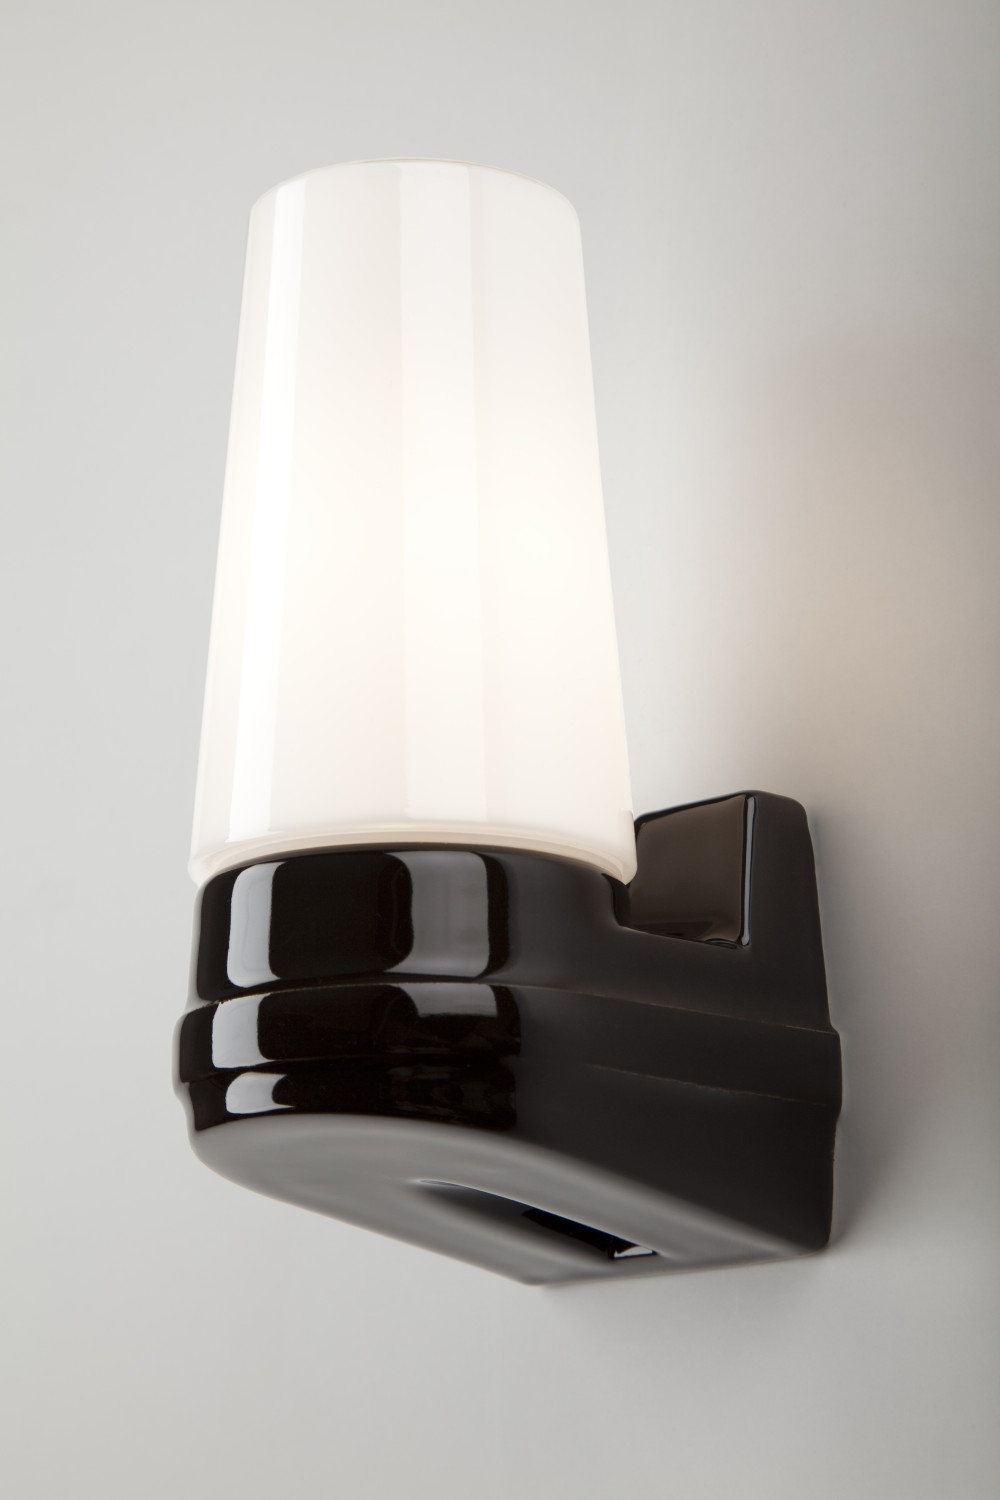 Bernadotte Single Wall Light Old School Electric